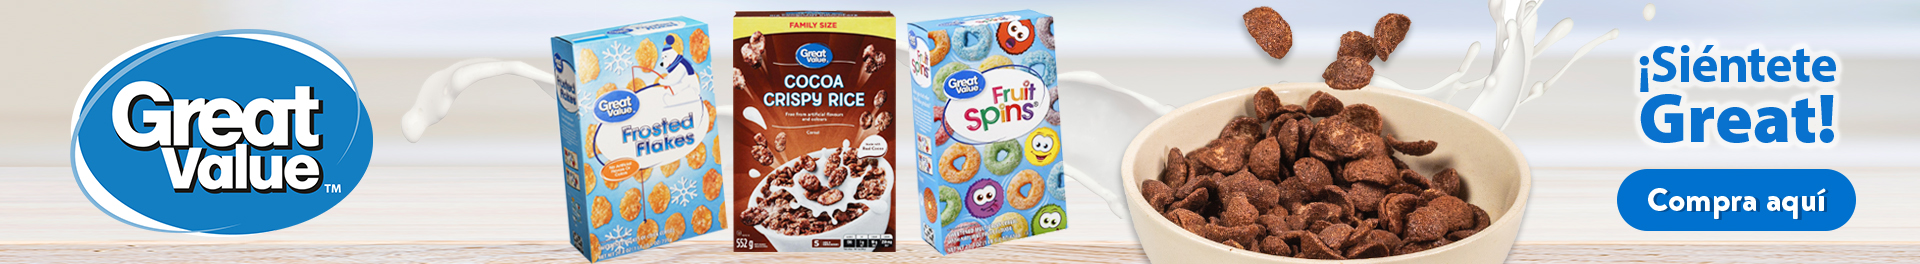 Cereal Great Value